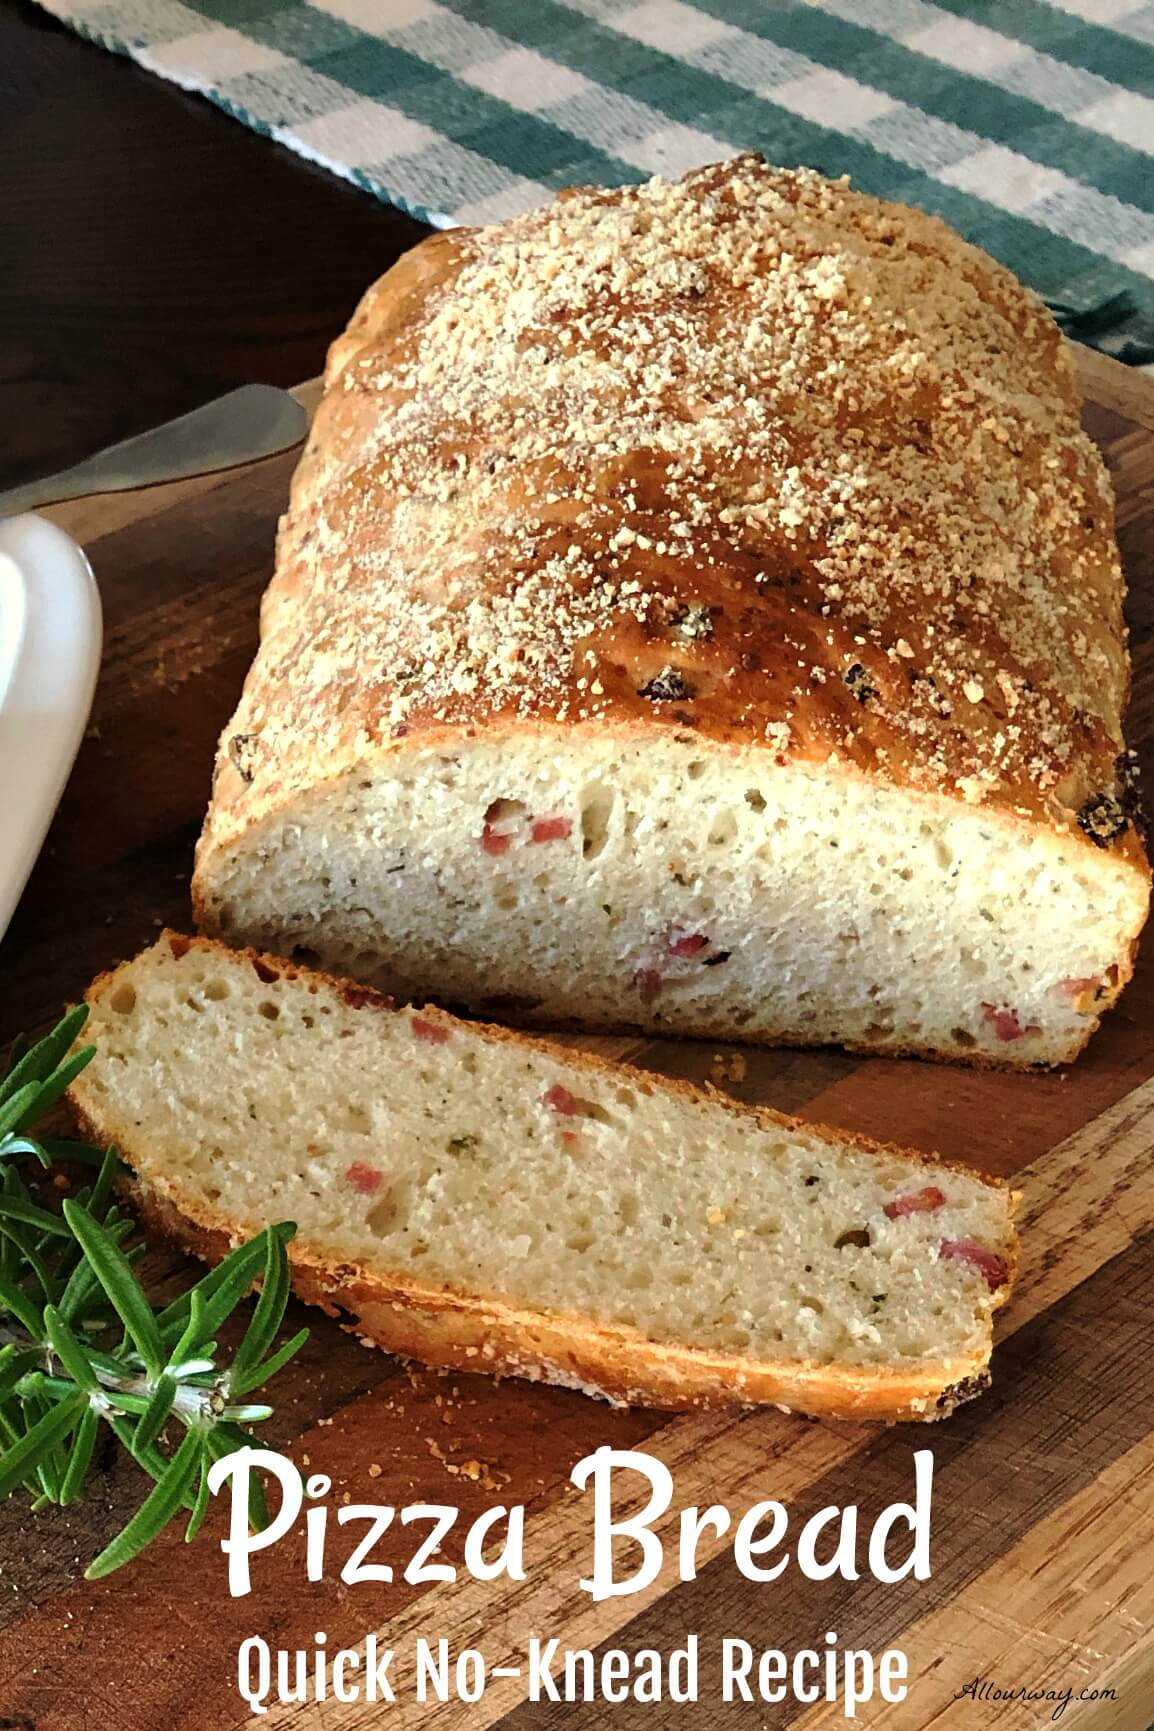 Loaf of golden brown pizza bread sliced on a cutting board with specks of salami and herbs studding the loaf and slice.